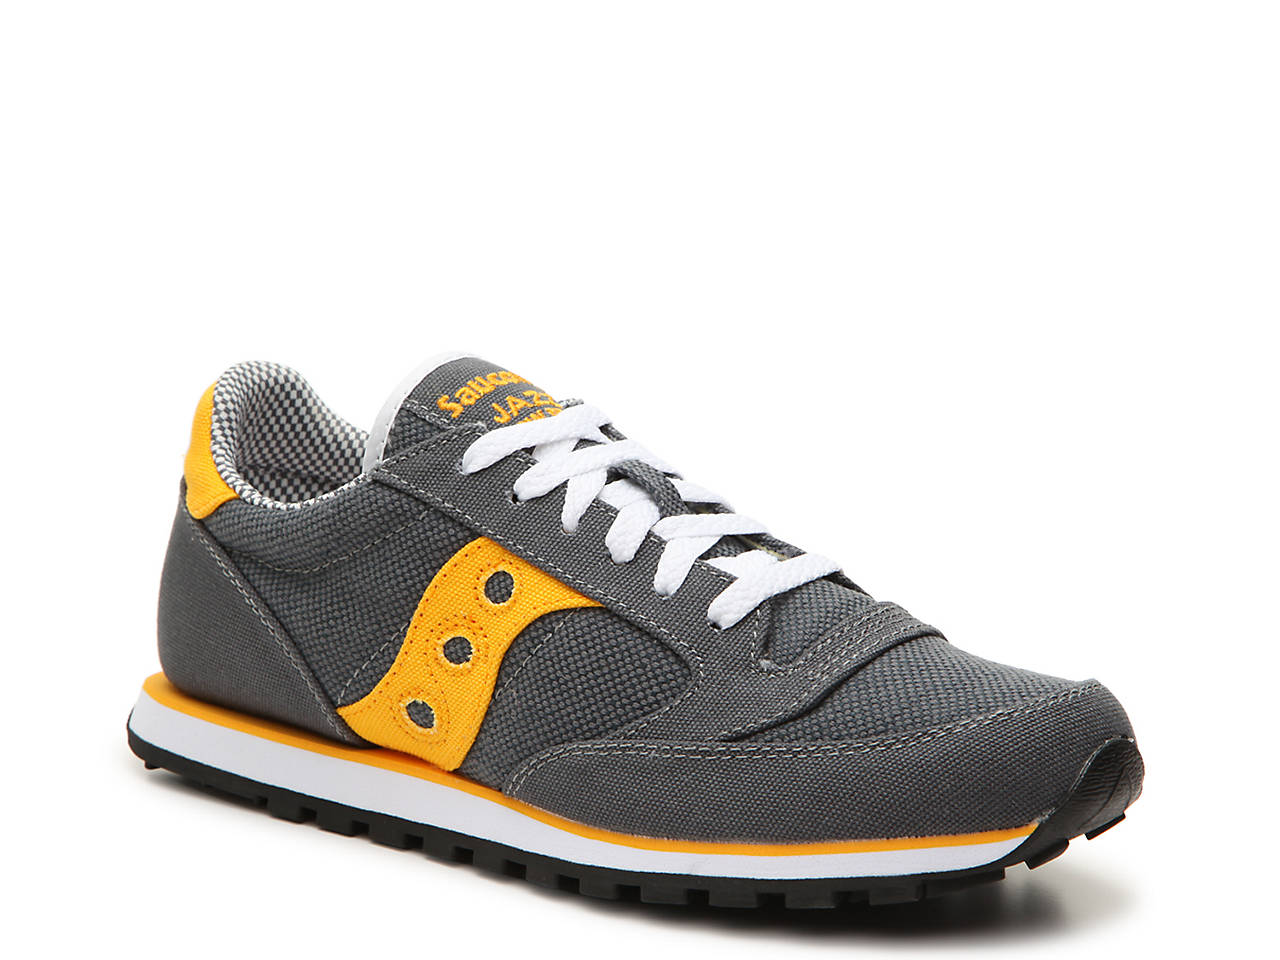 sports shoes db196 e52d0 Jazz Low Pro Retro Sneaker - Men's